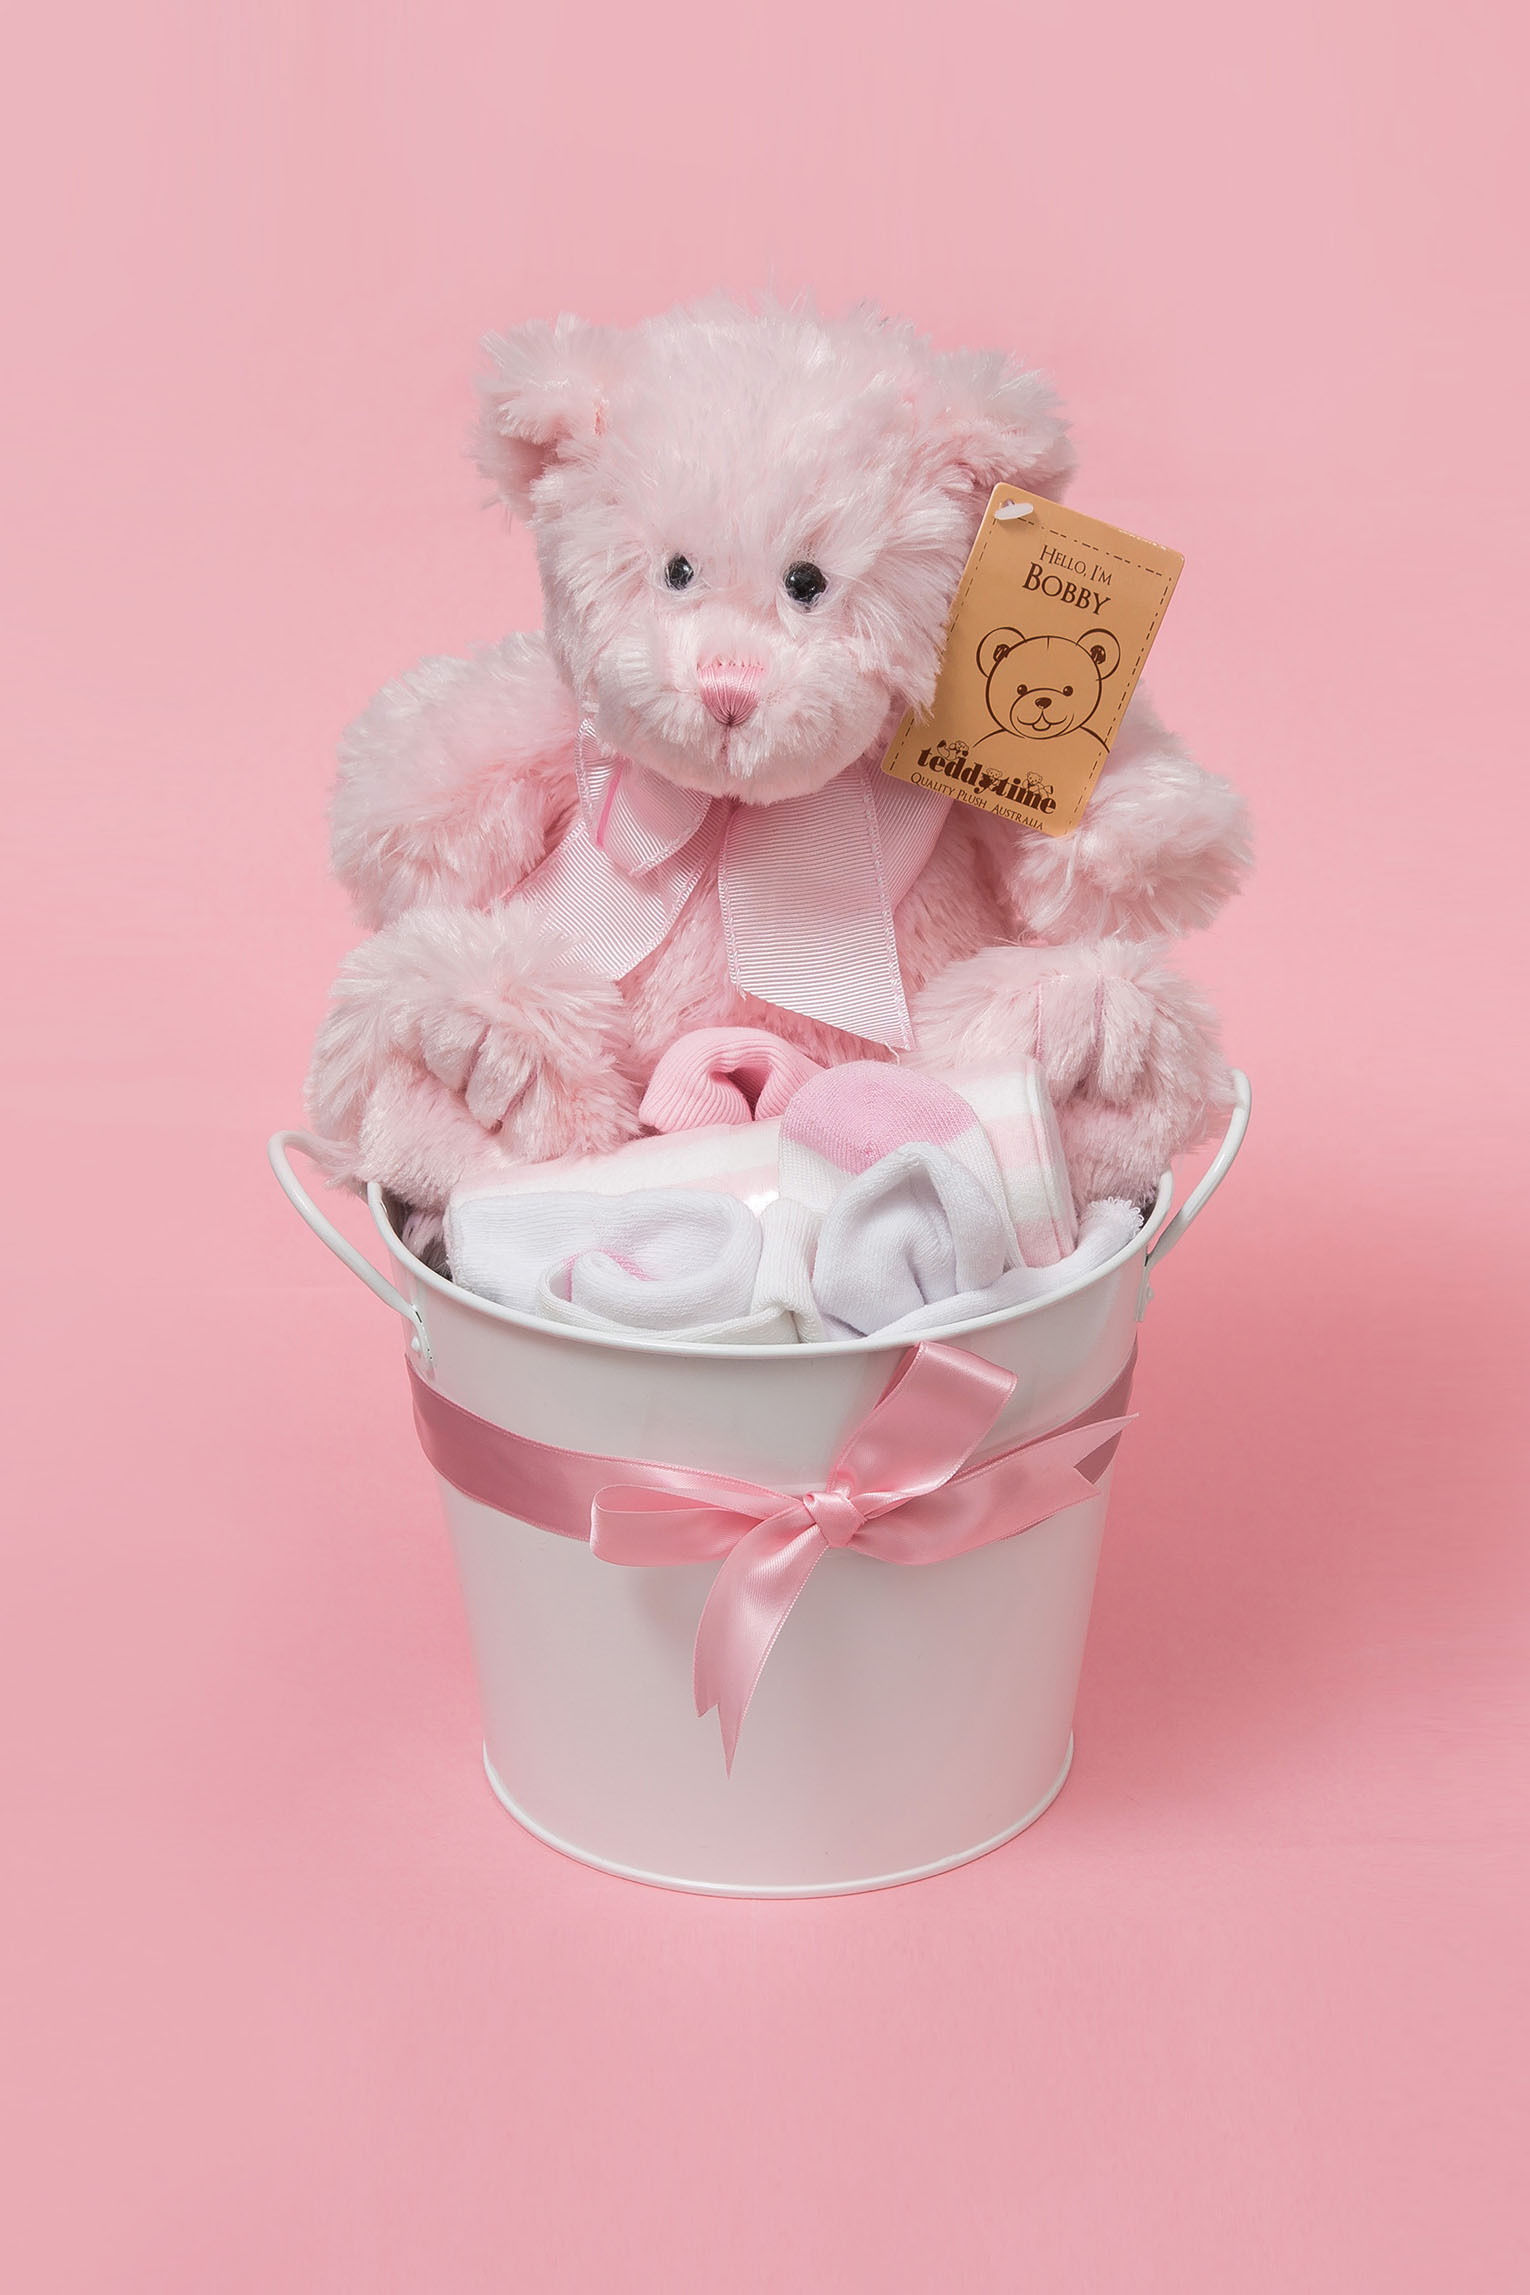 baby-stitch-penrith-product-photography-02